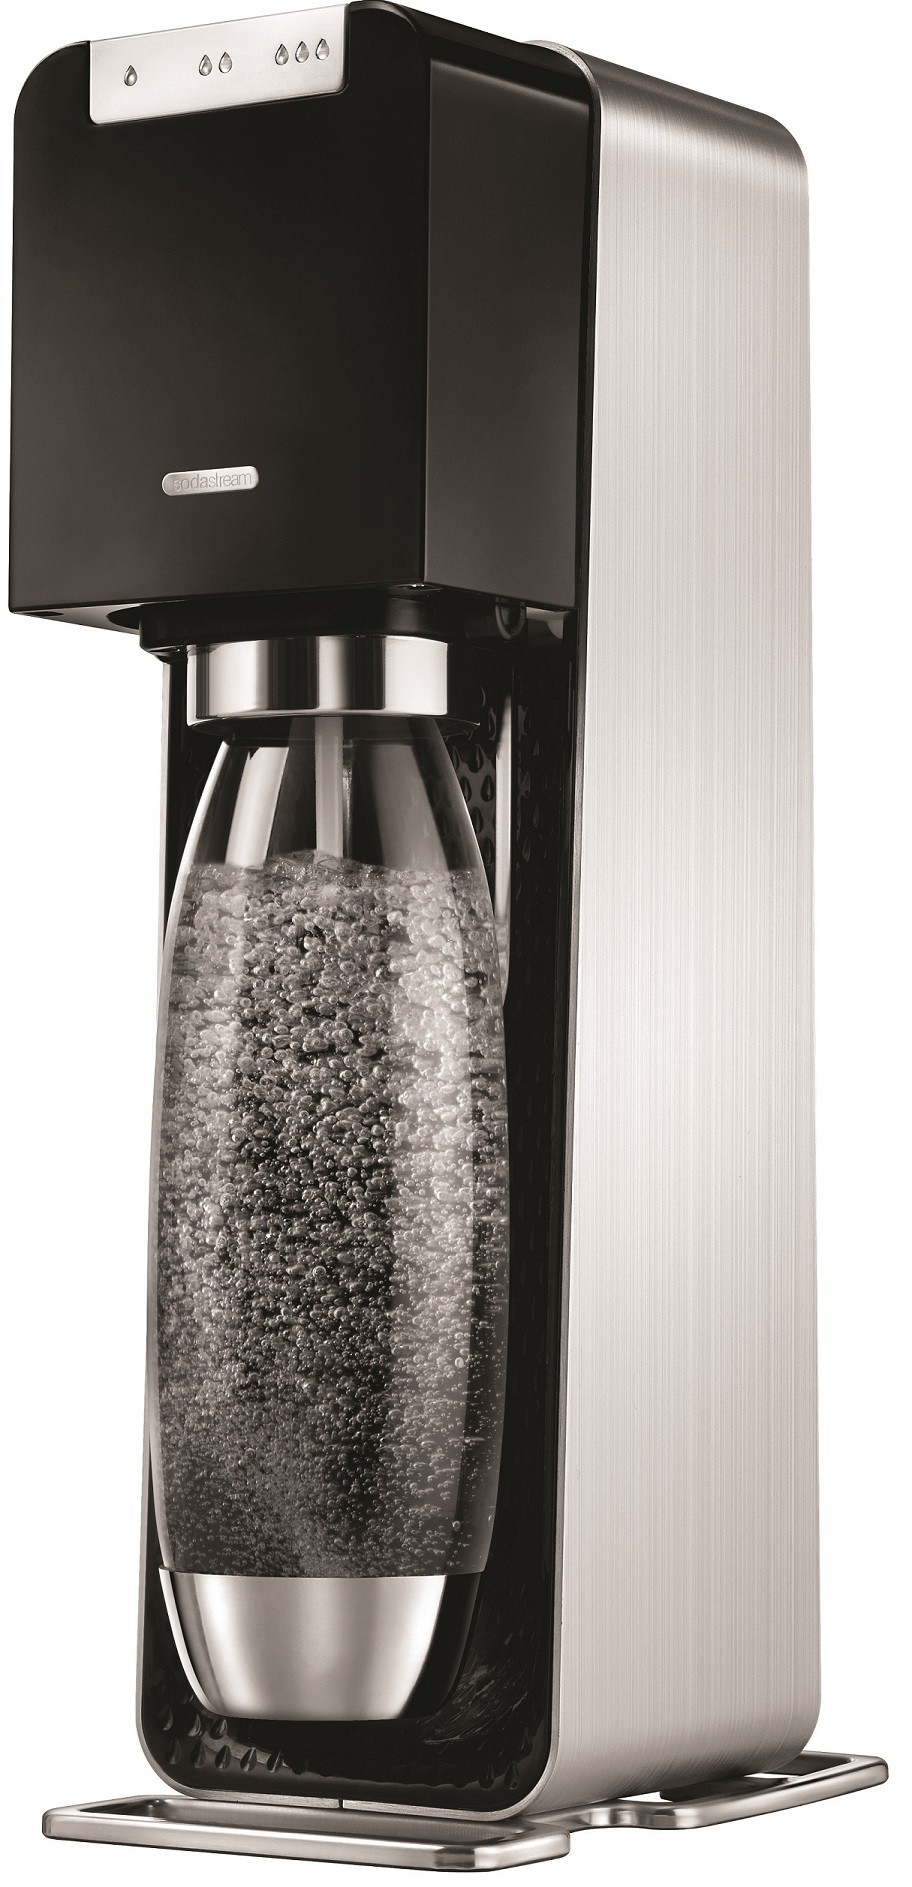 SODASTREAM - SOURCEPOWERN